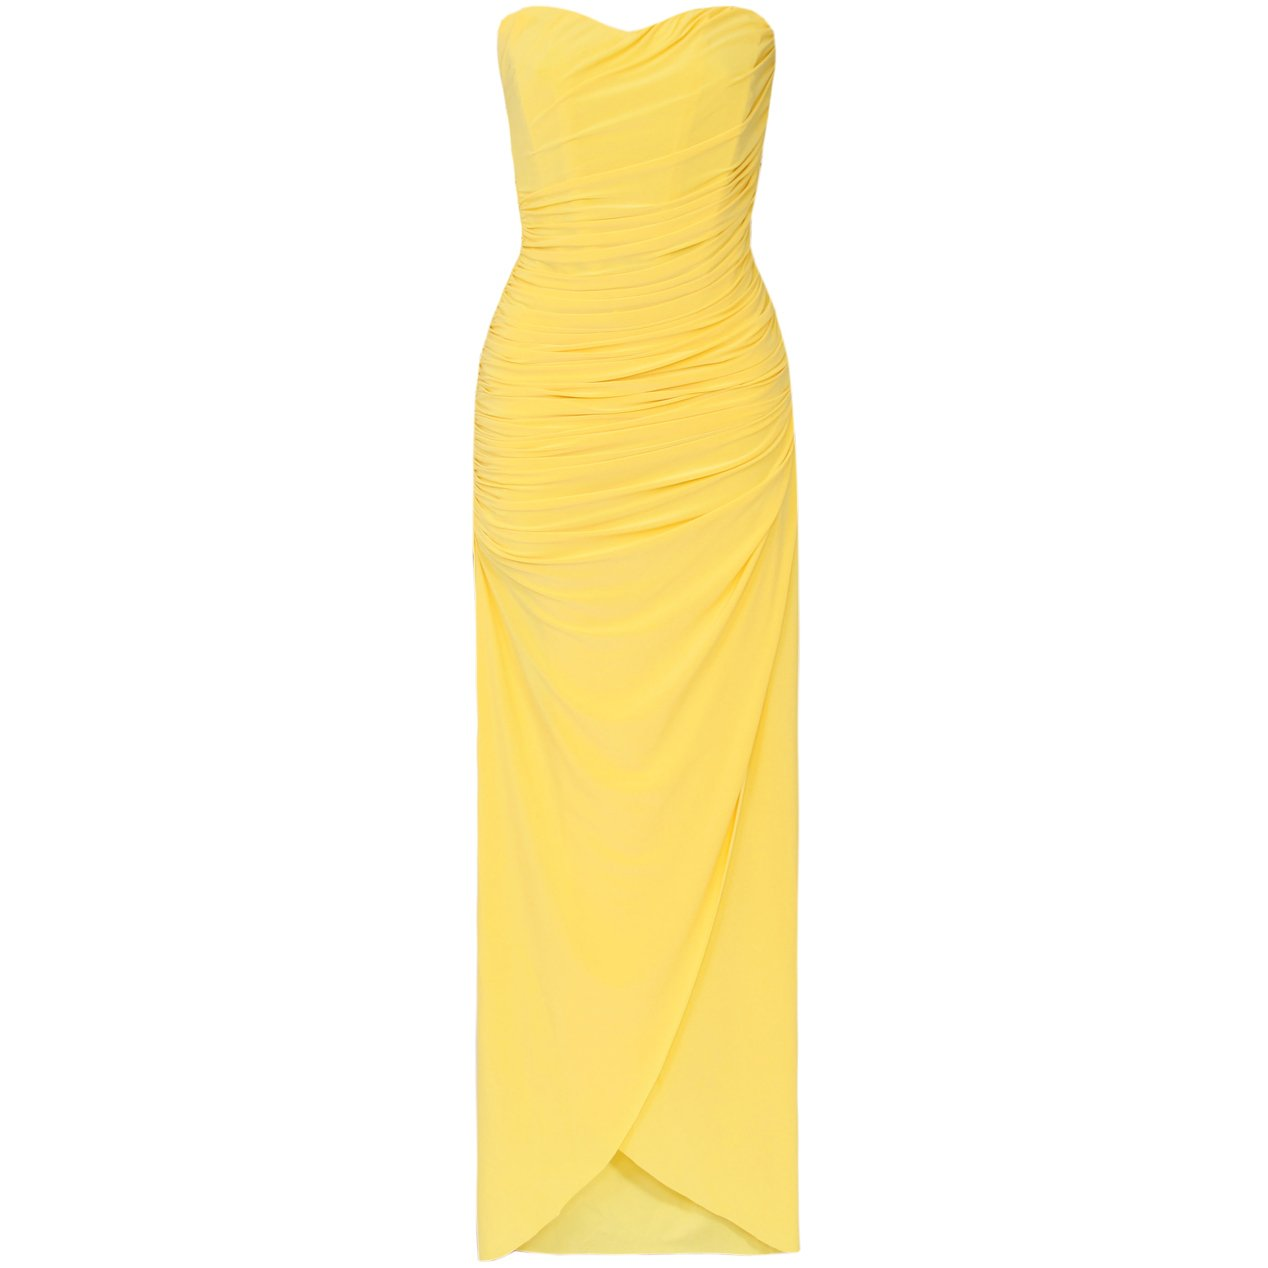 WOMENS LADIES YELLOW STRAPLESS LONG SUMMER EVENING CORSET PARTY PROM GOWN MAXI DRESS UK 8, US 4